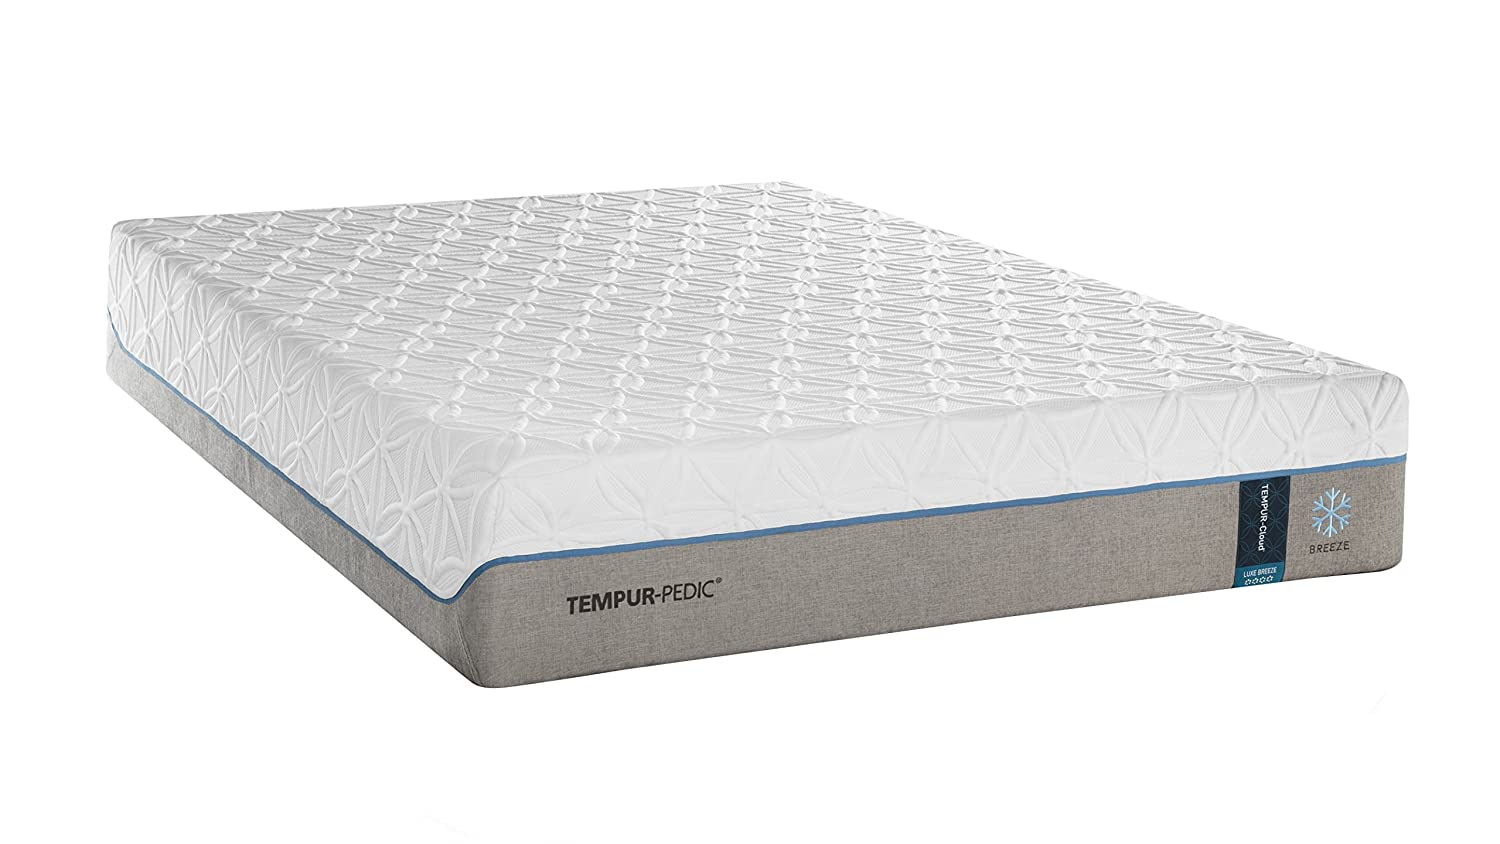 Amazon.com: Tempur-PedicTEMPUR-CloudLuxe Breeze 13.5-Inch Extra-Soft Cooling Foam Mattress, Queen, Made in USA, 10 Year Warranty: Kitchen & Dining